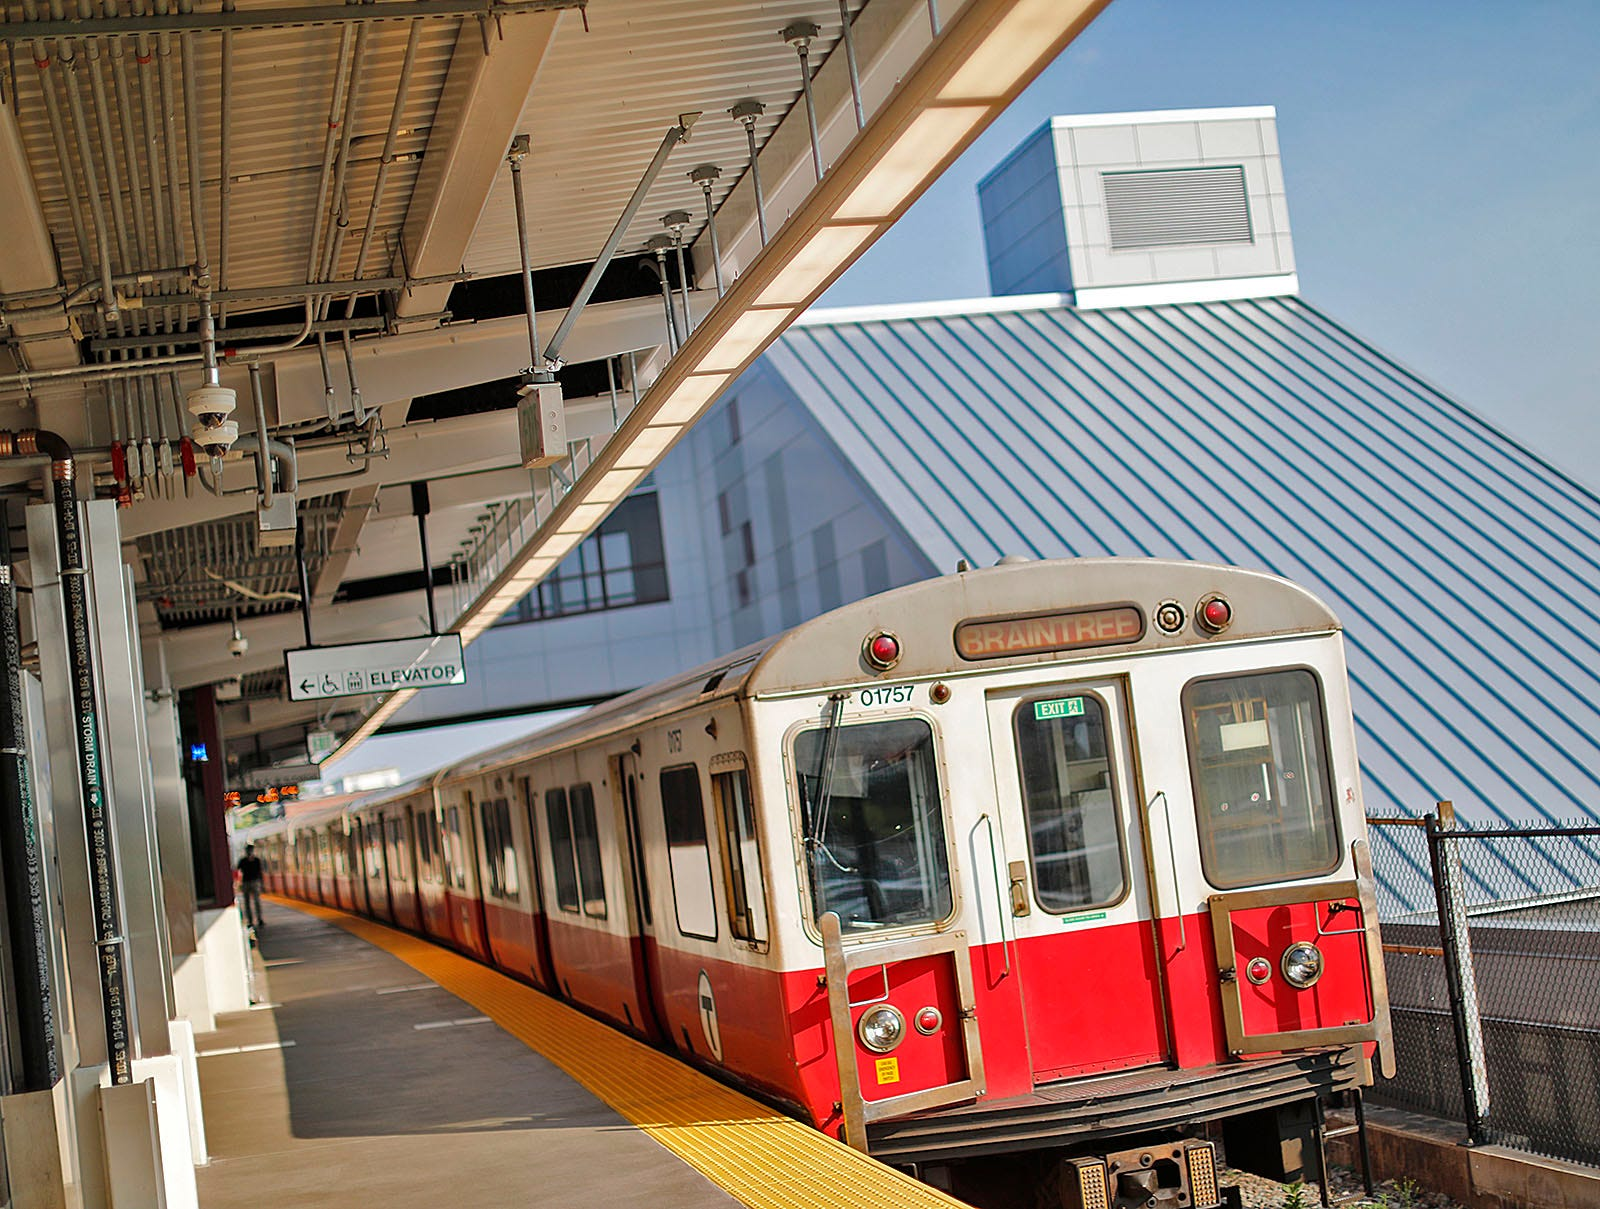 A Red Line train on Tuesday, July 27, 2021. The South Shore extension of the Red Line turns 50 this year.